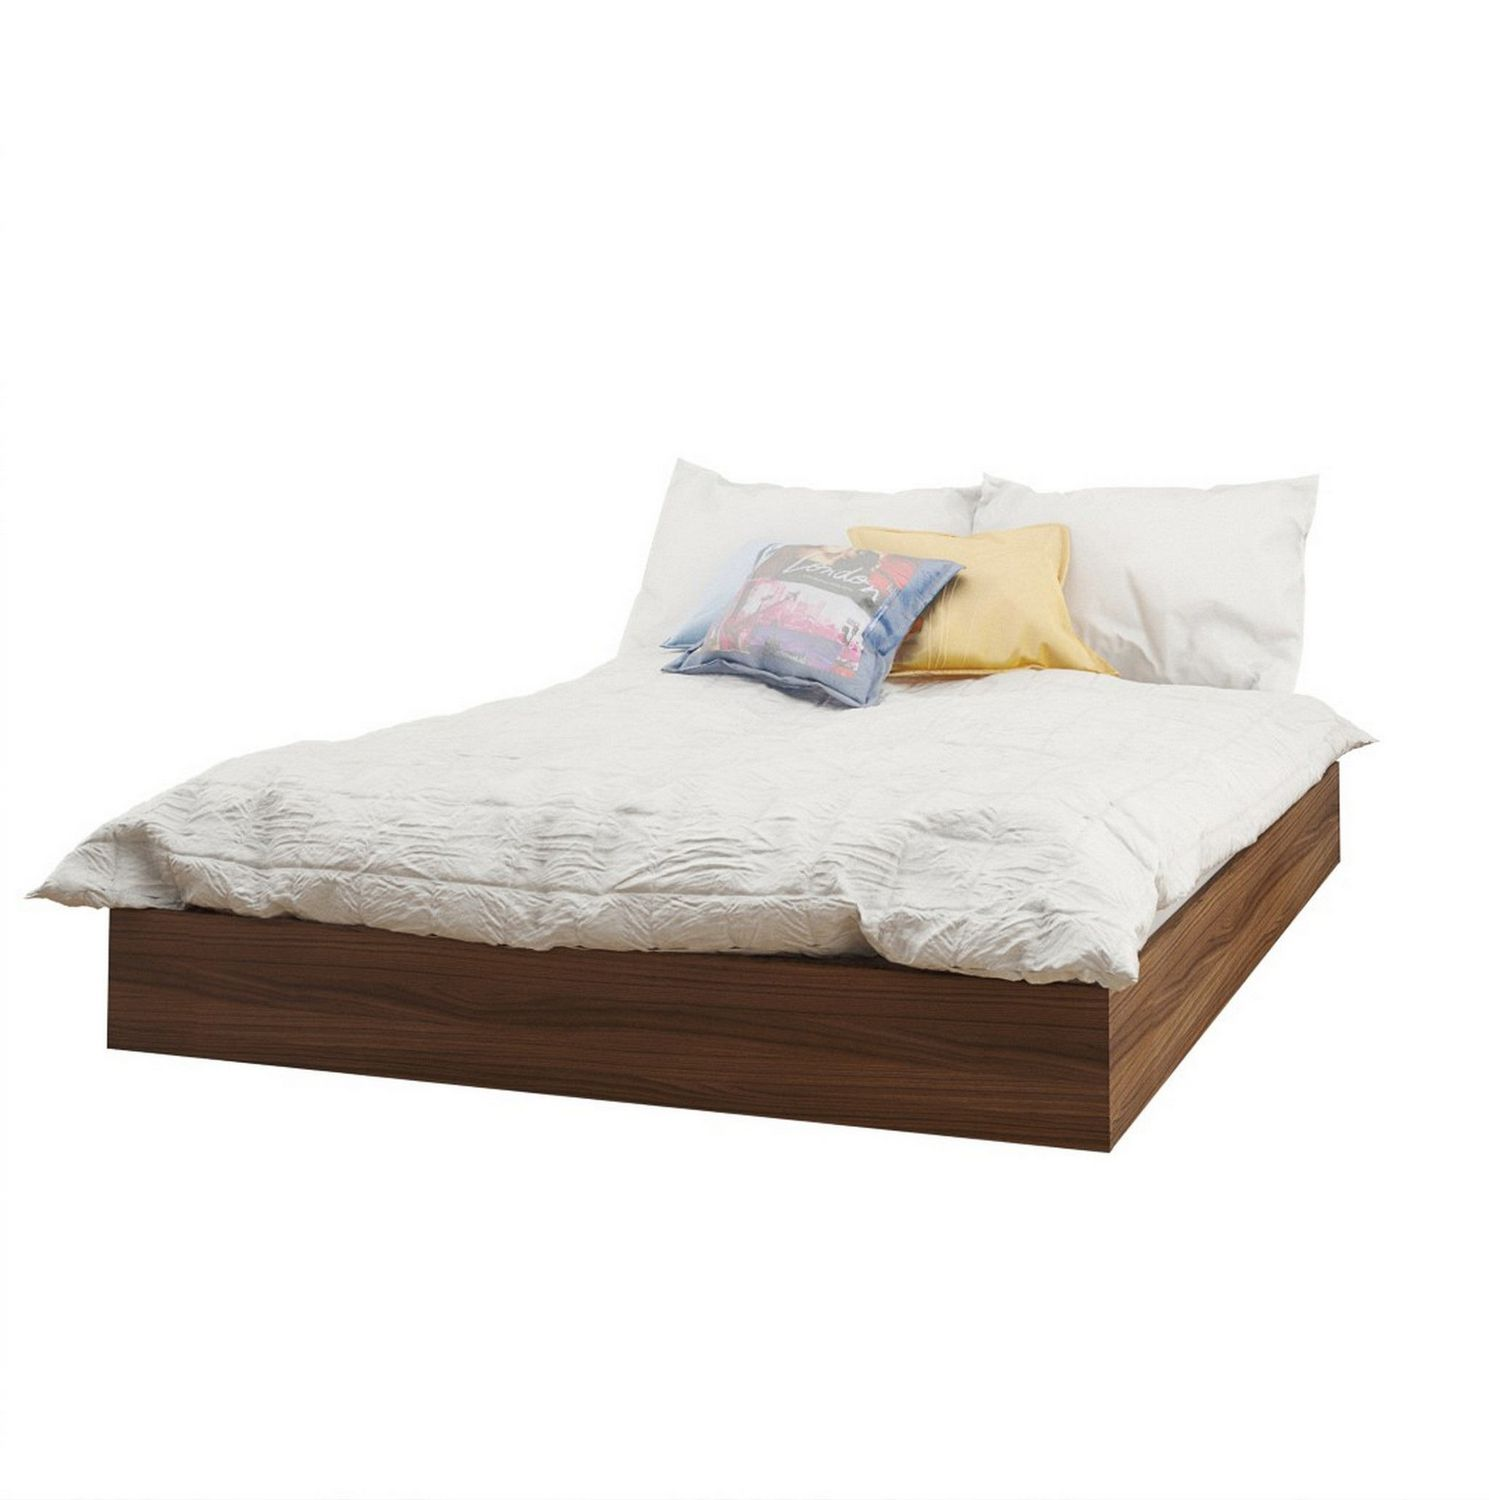 st kingsdown viateur size full us mattress